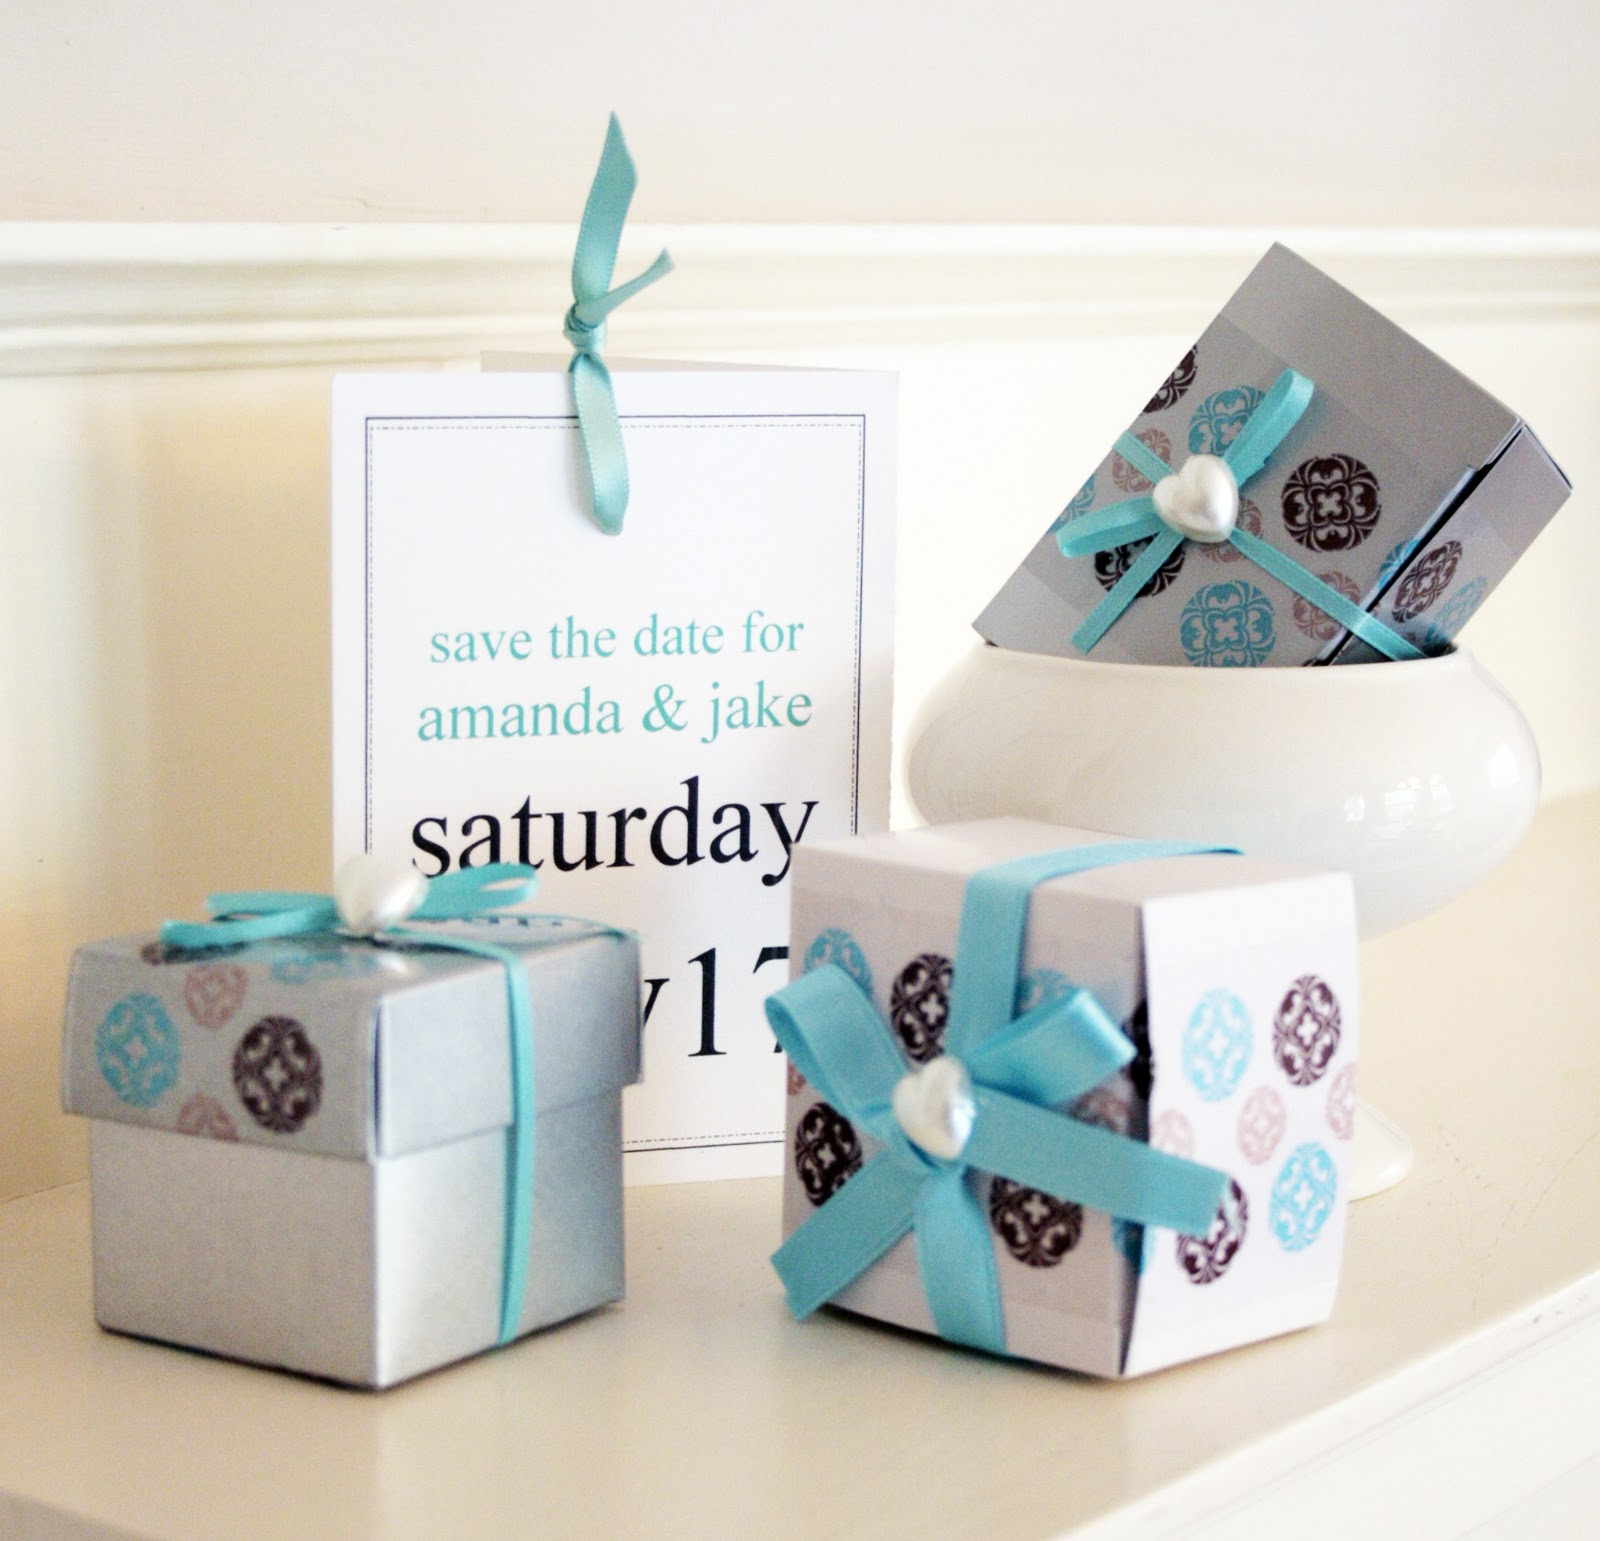 Yobys Blog I Love The 3x3x3 Favor Boxes I